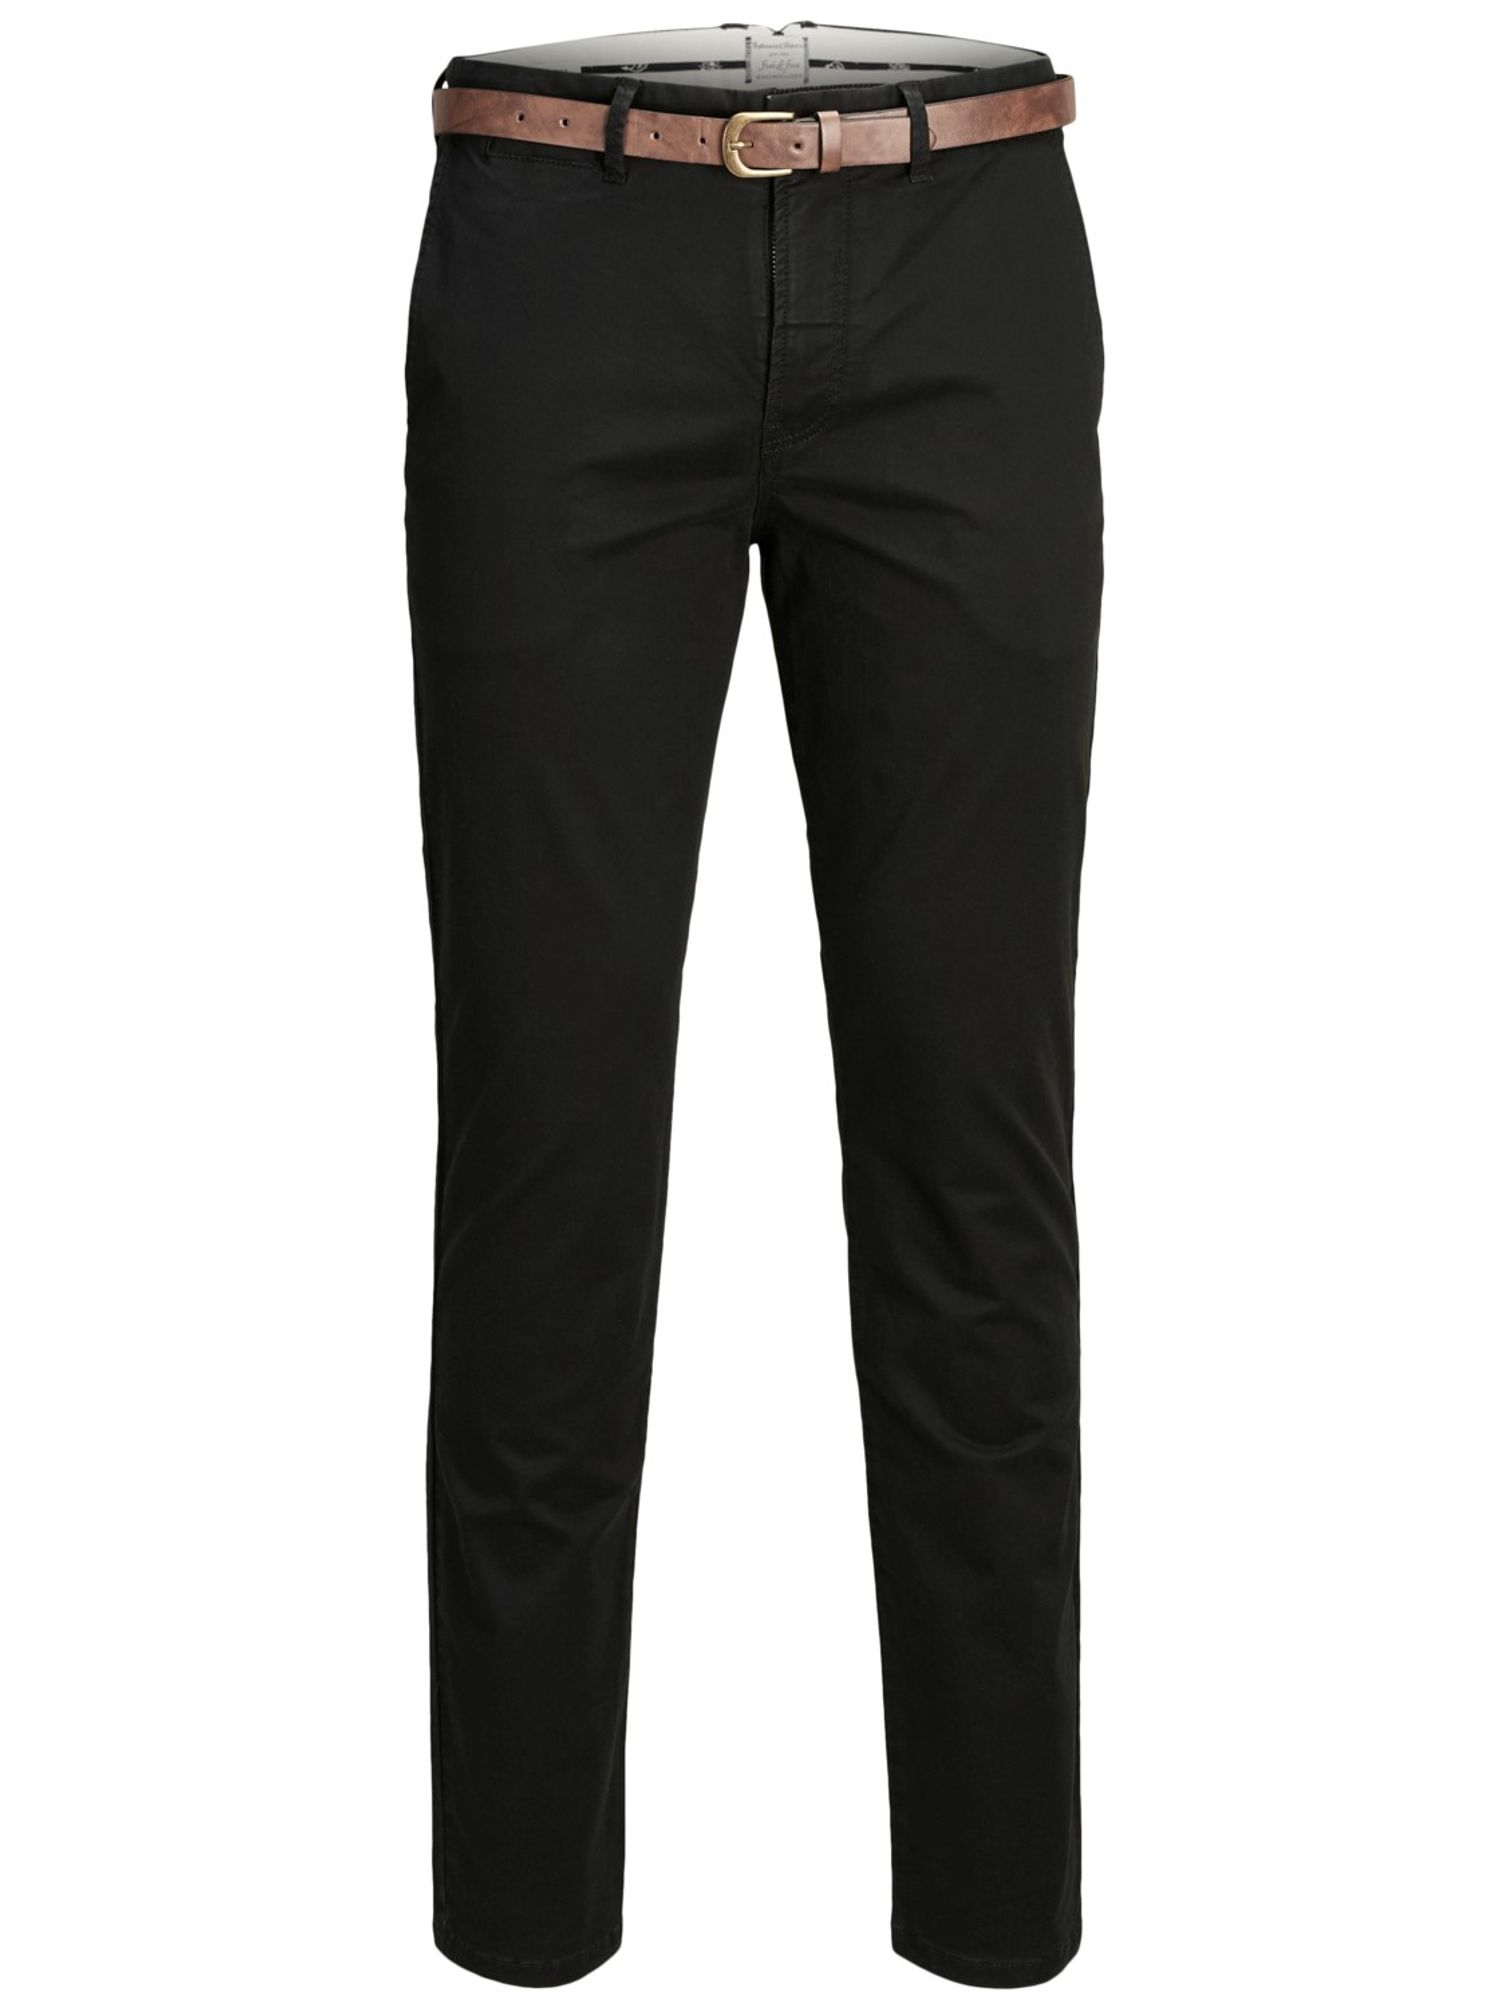 promo code a6373 51d0e Jack & Jones - Herren Chino Hose mit Gürtel in Schwarz, Regular Fit (Art.  12139722)